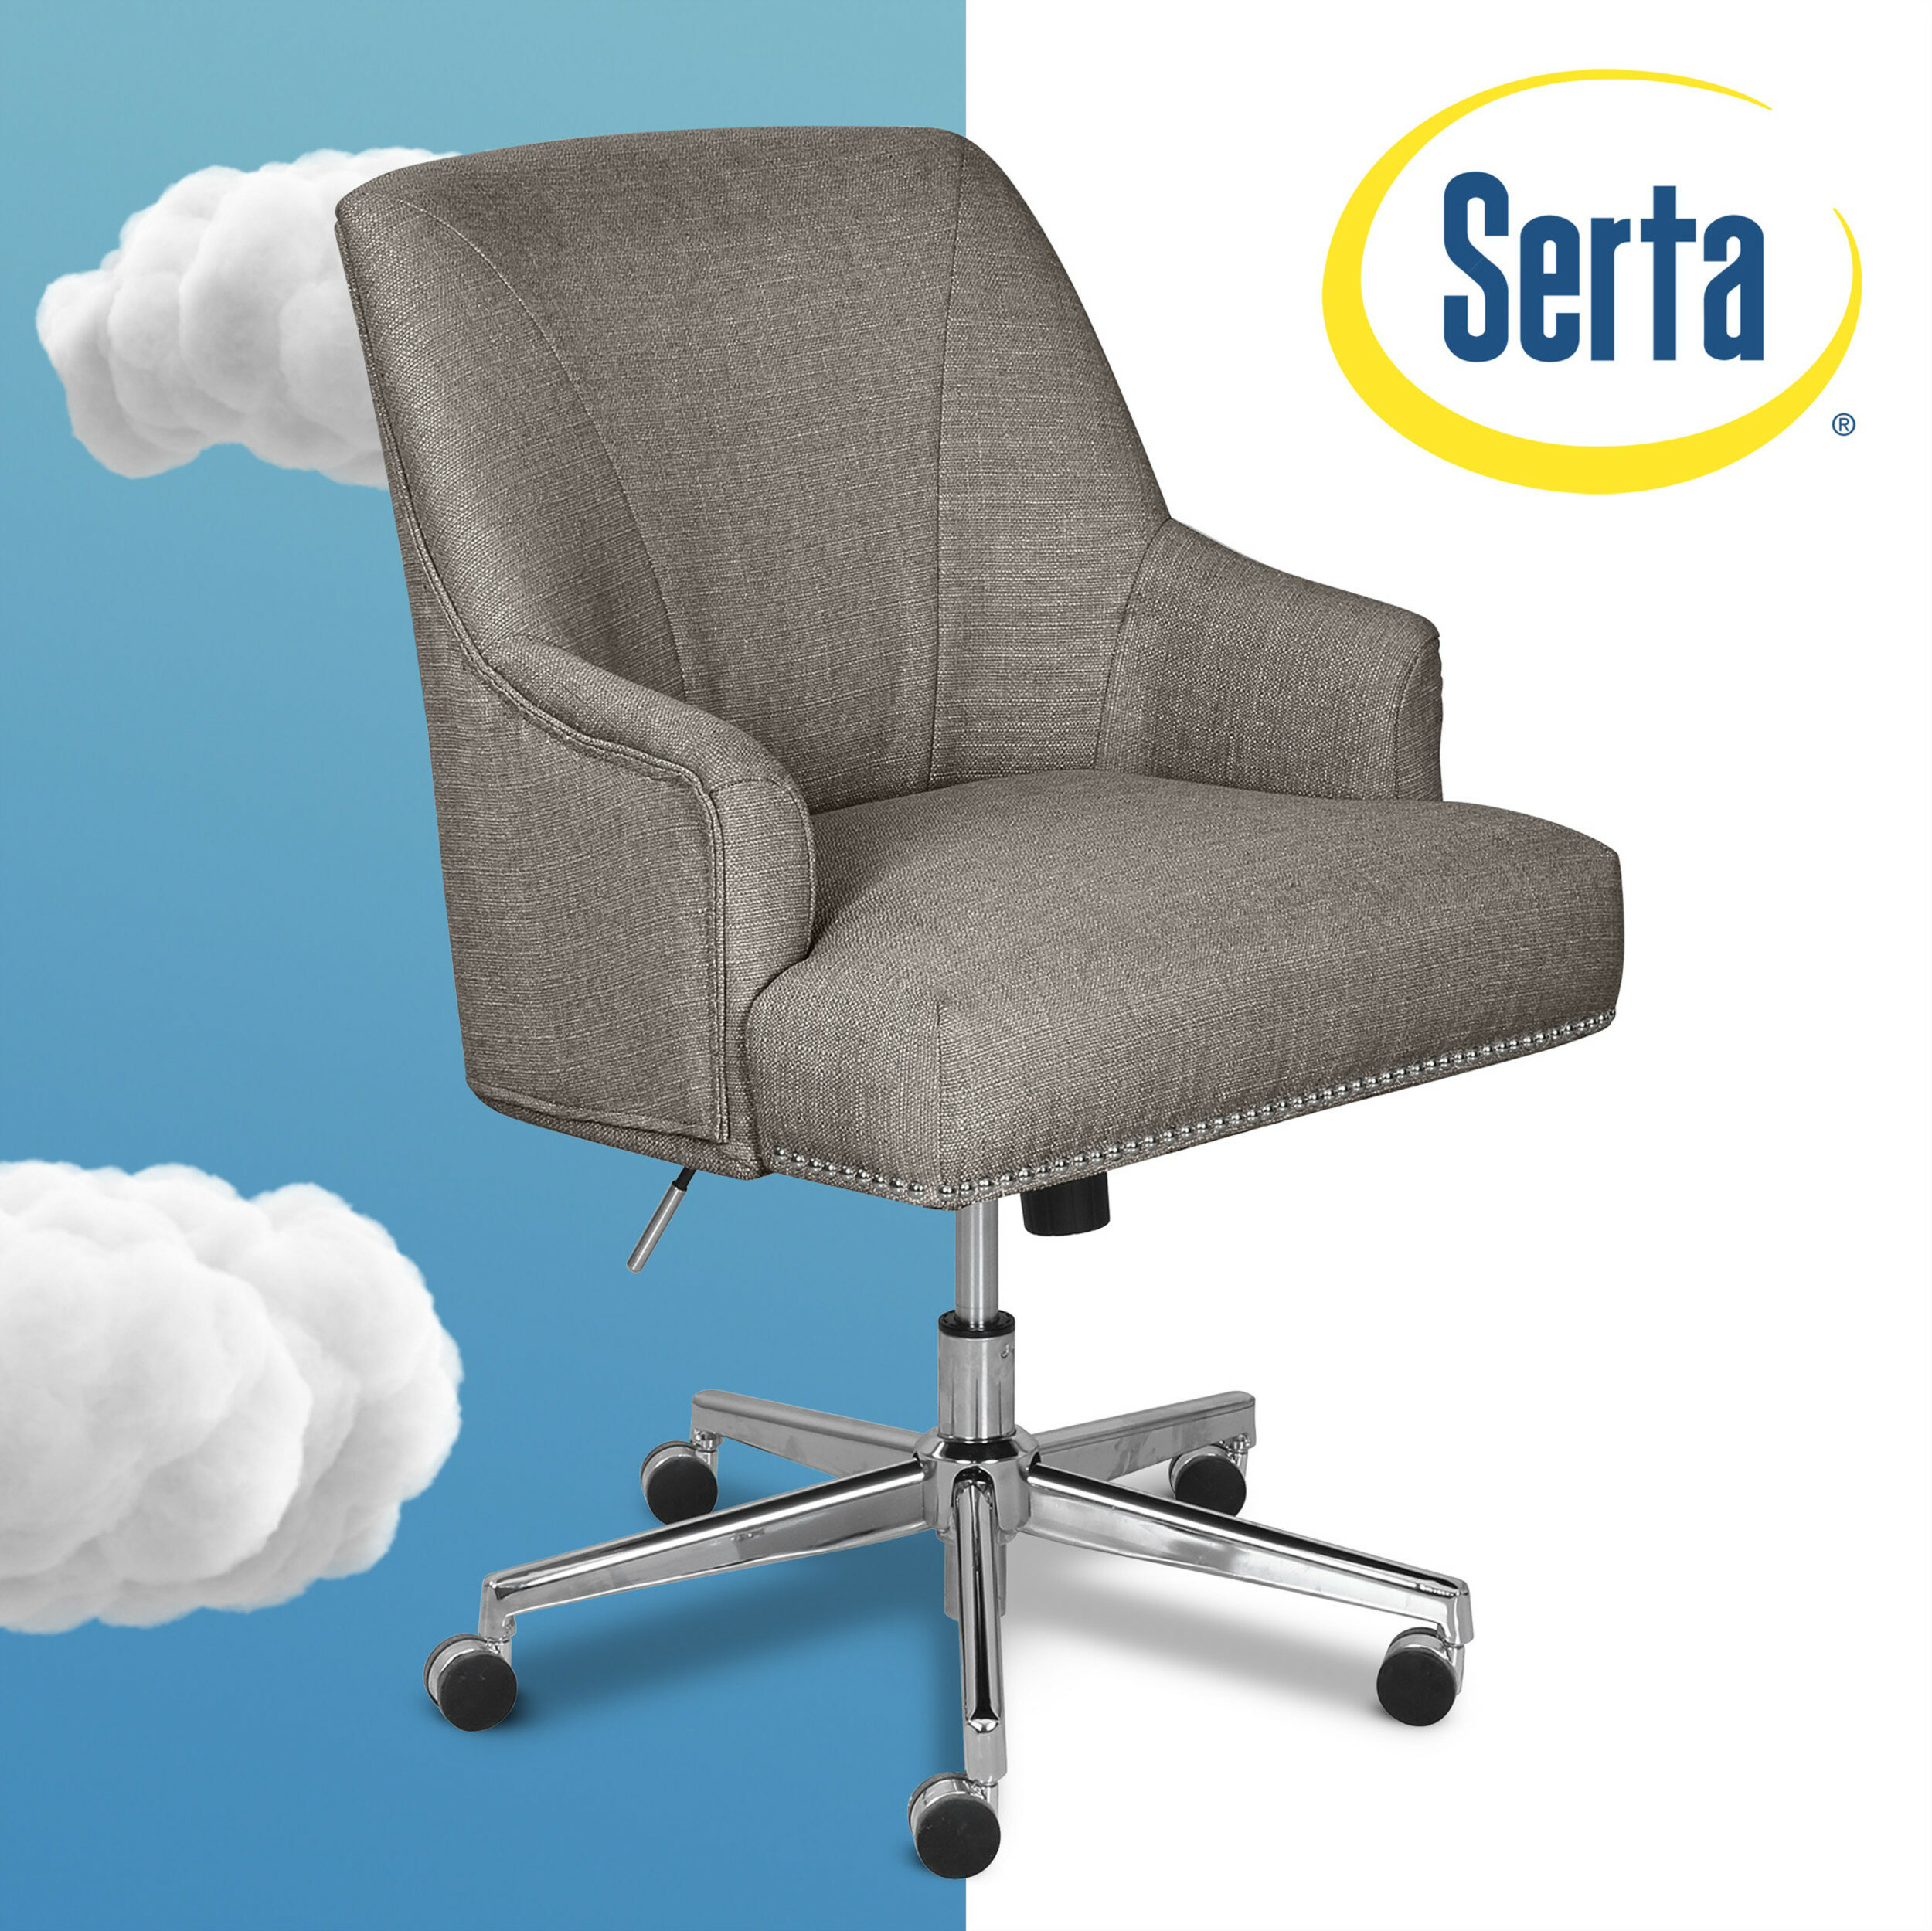 Serta At Home Serta Leighton Task Chair Reviews Wayfair